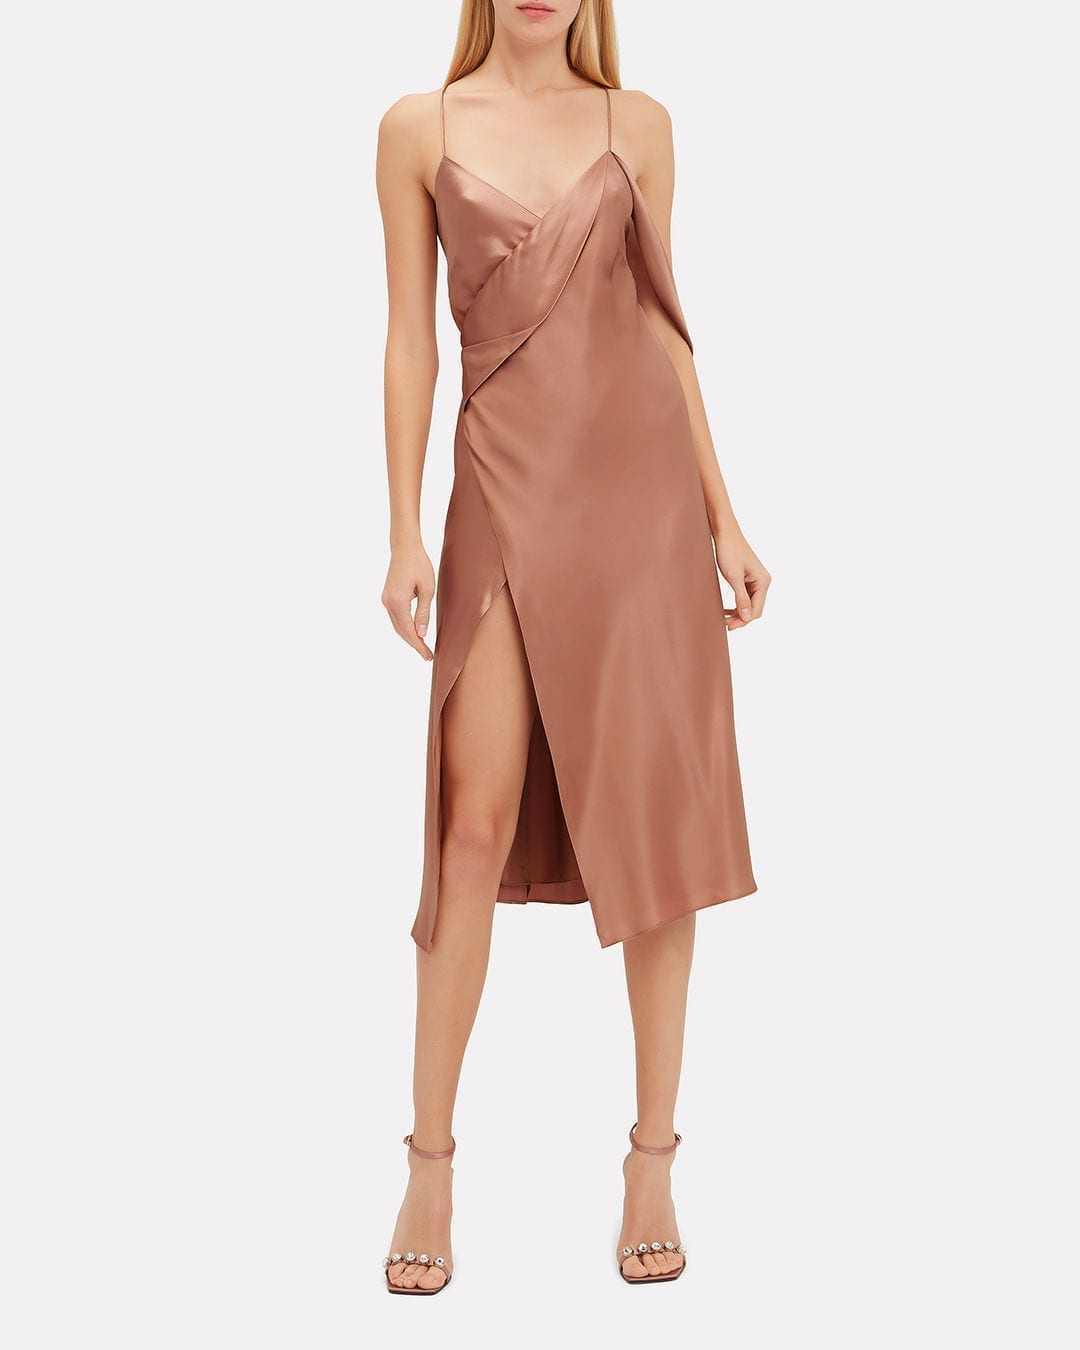 MICHELLE MASON Strappy Midi Nude Dress